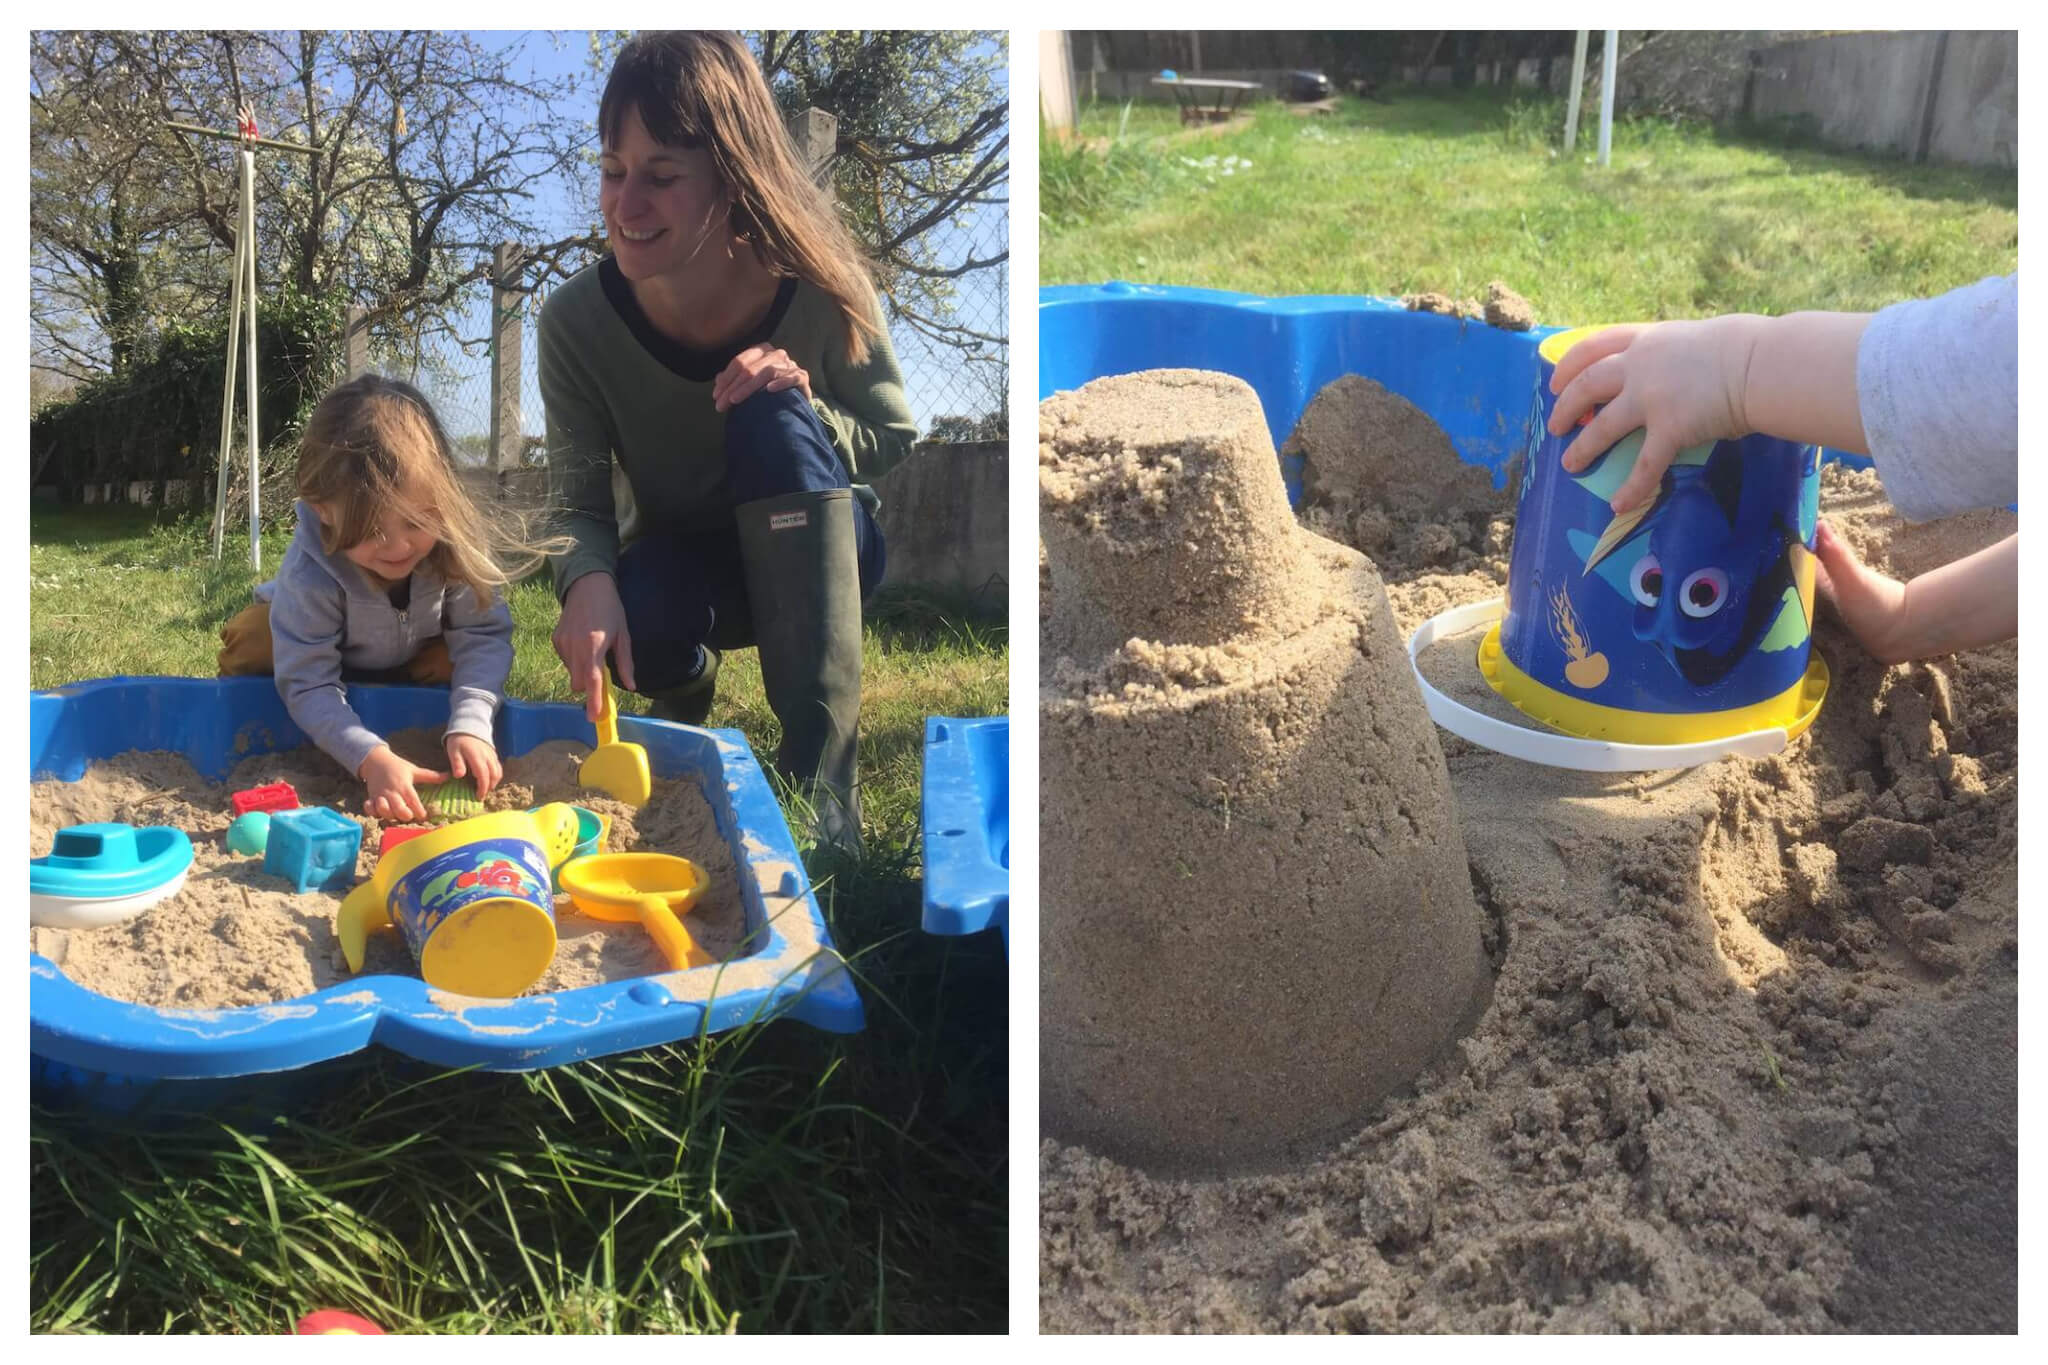 Left: Emily Dilling plays in the sandbox in their garden at home with her daughter. Right: Emily's daughter makes sandcastles with a bucket, on which there is an image of Dory from Finding Nemo.